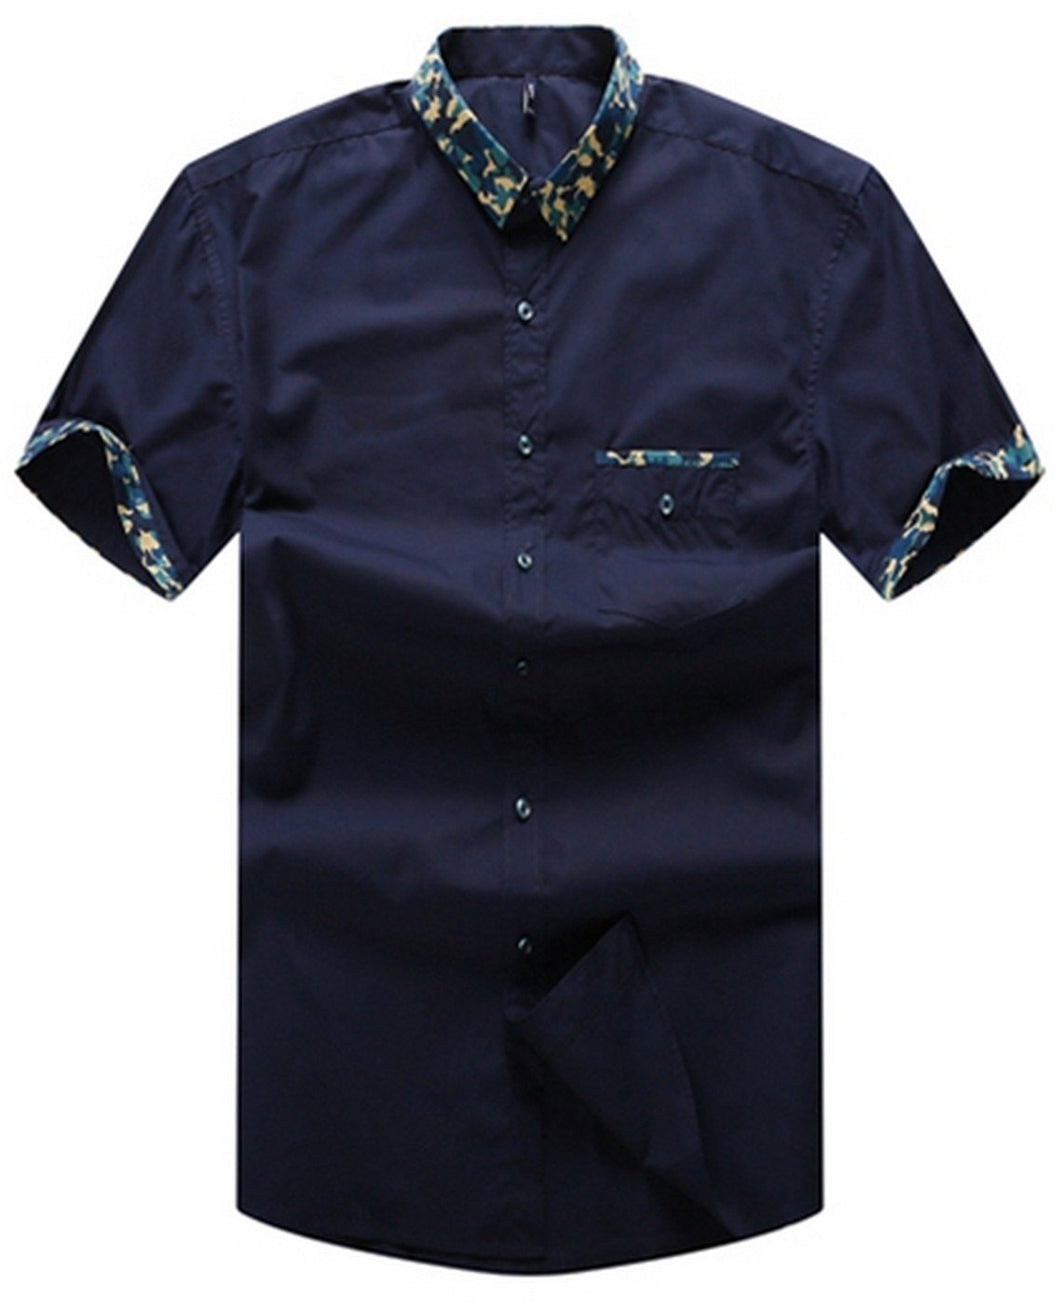 Navy blue big and tall shirt